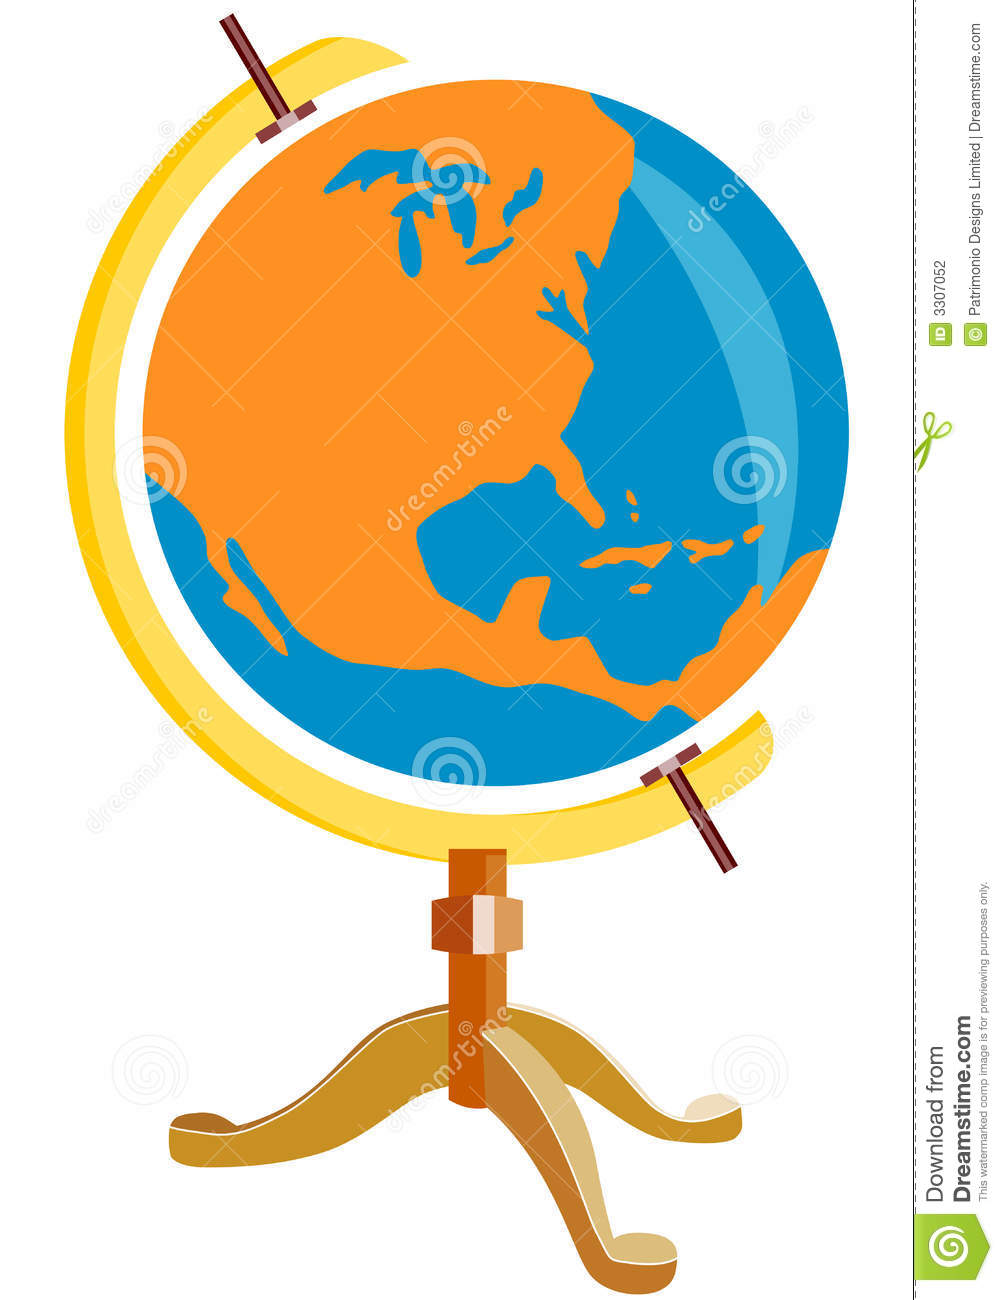 United states map globe clipart banner freeuse stock Globe With United States Map Stock Photography - Image: 3307052 banner freeuse stock